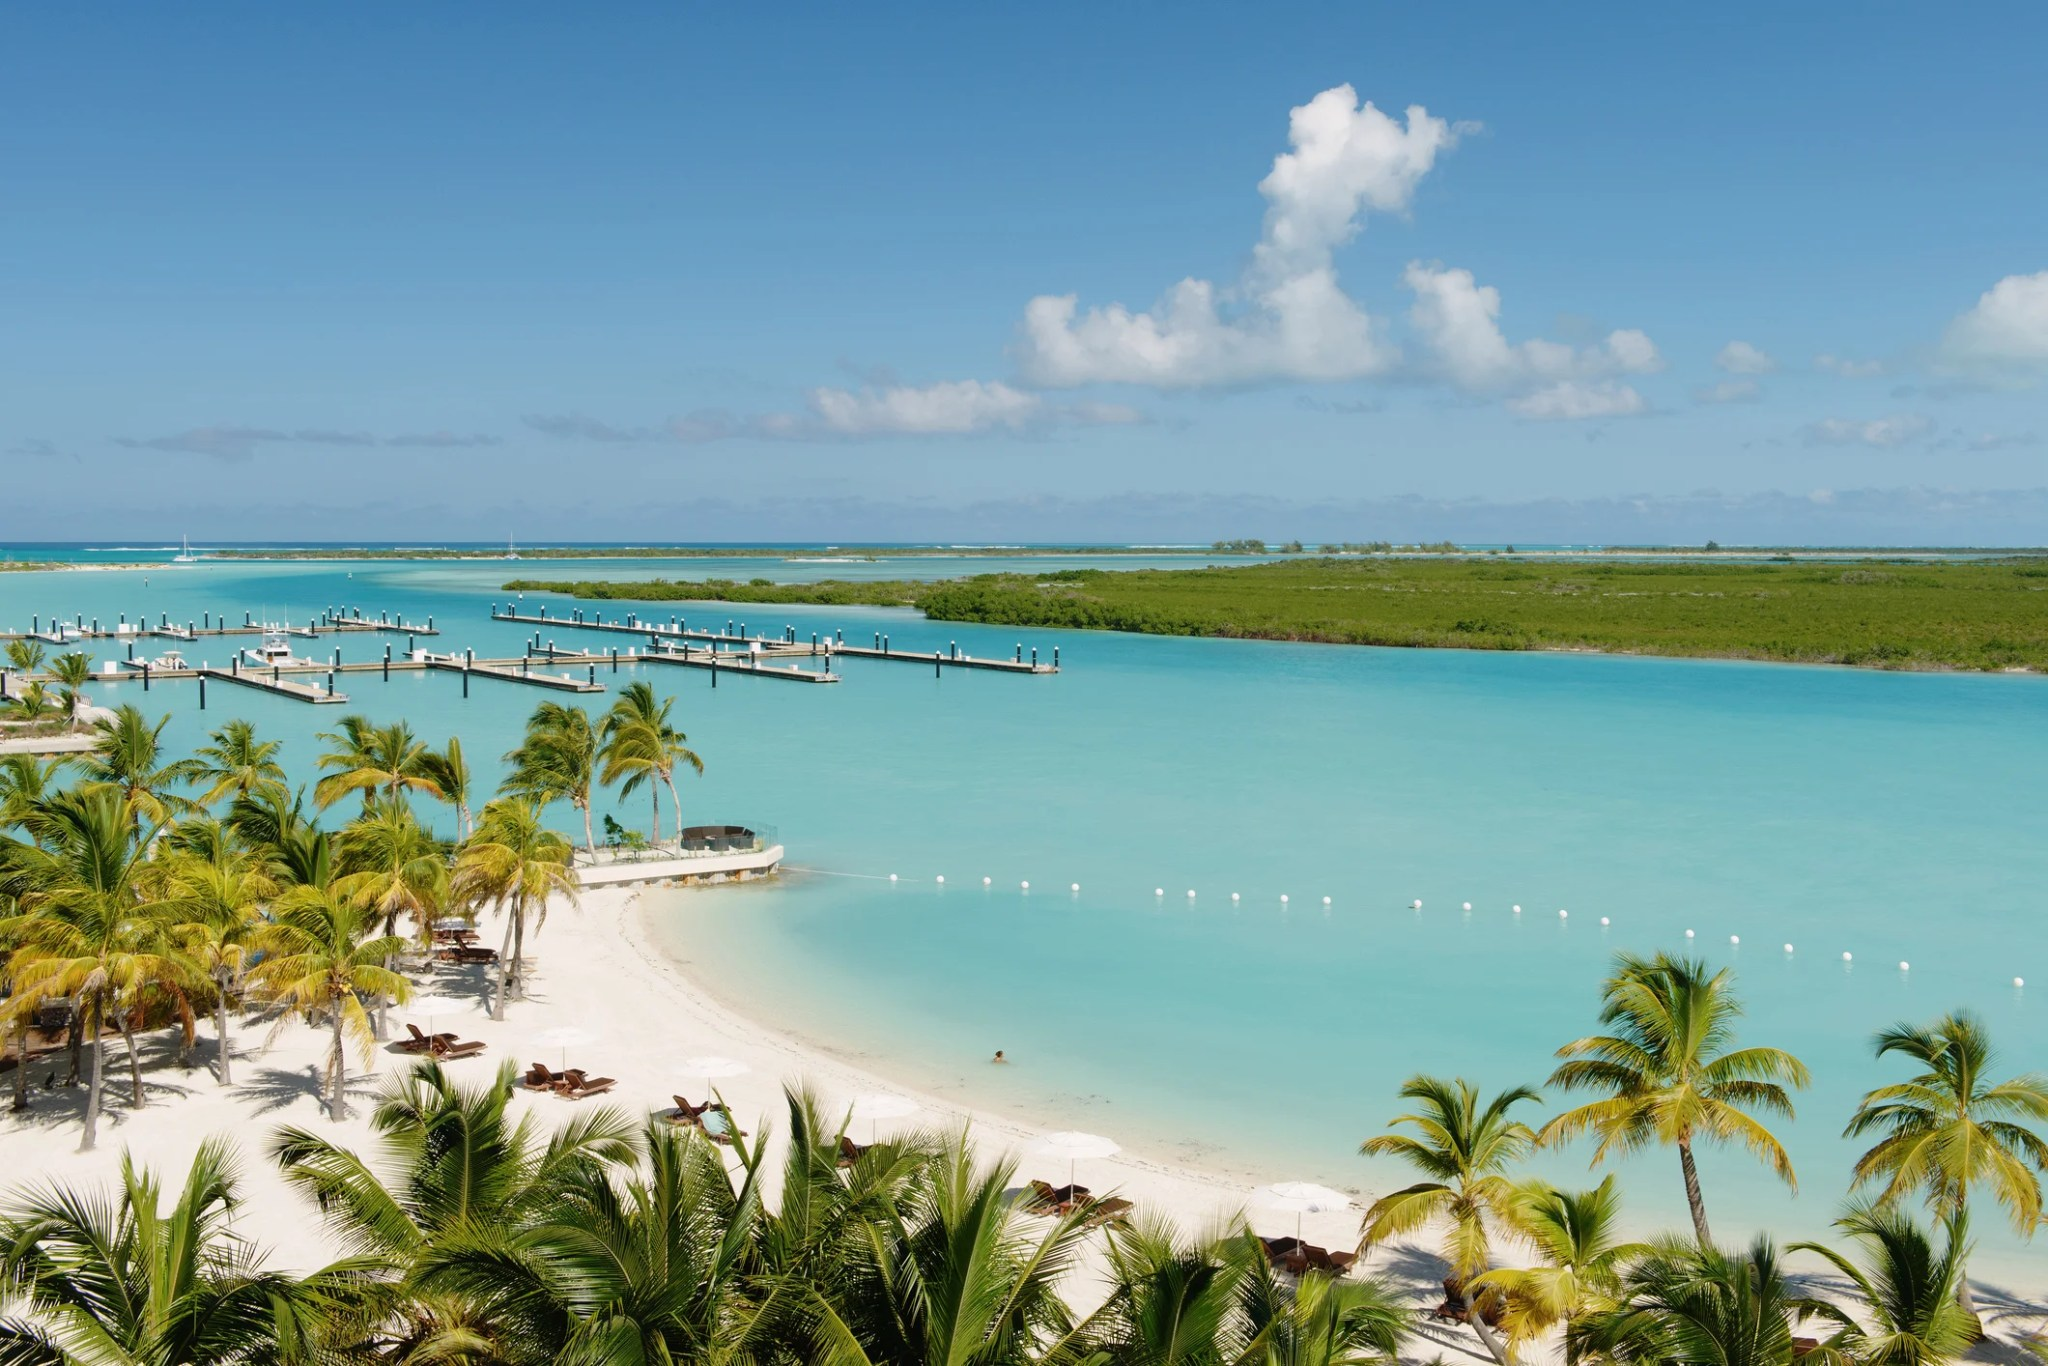 6 Things to Know Before You Go to Turks & Caicos